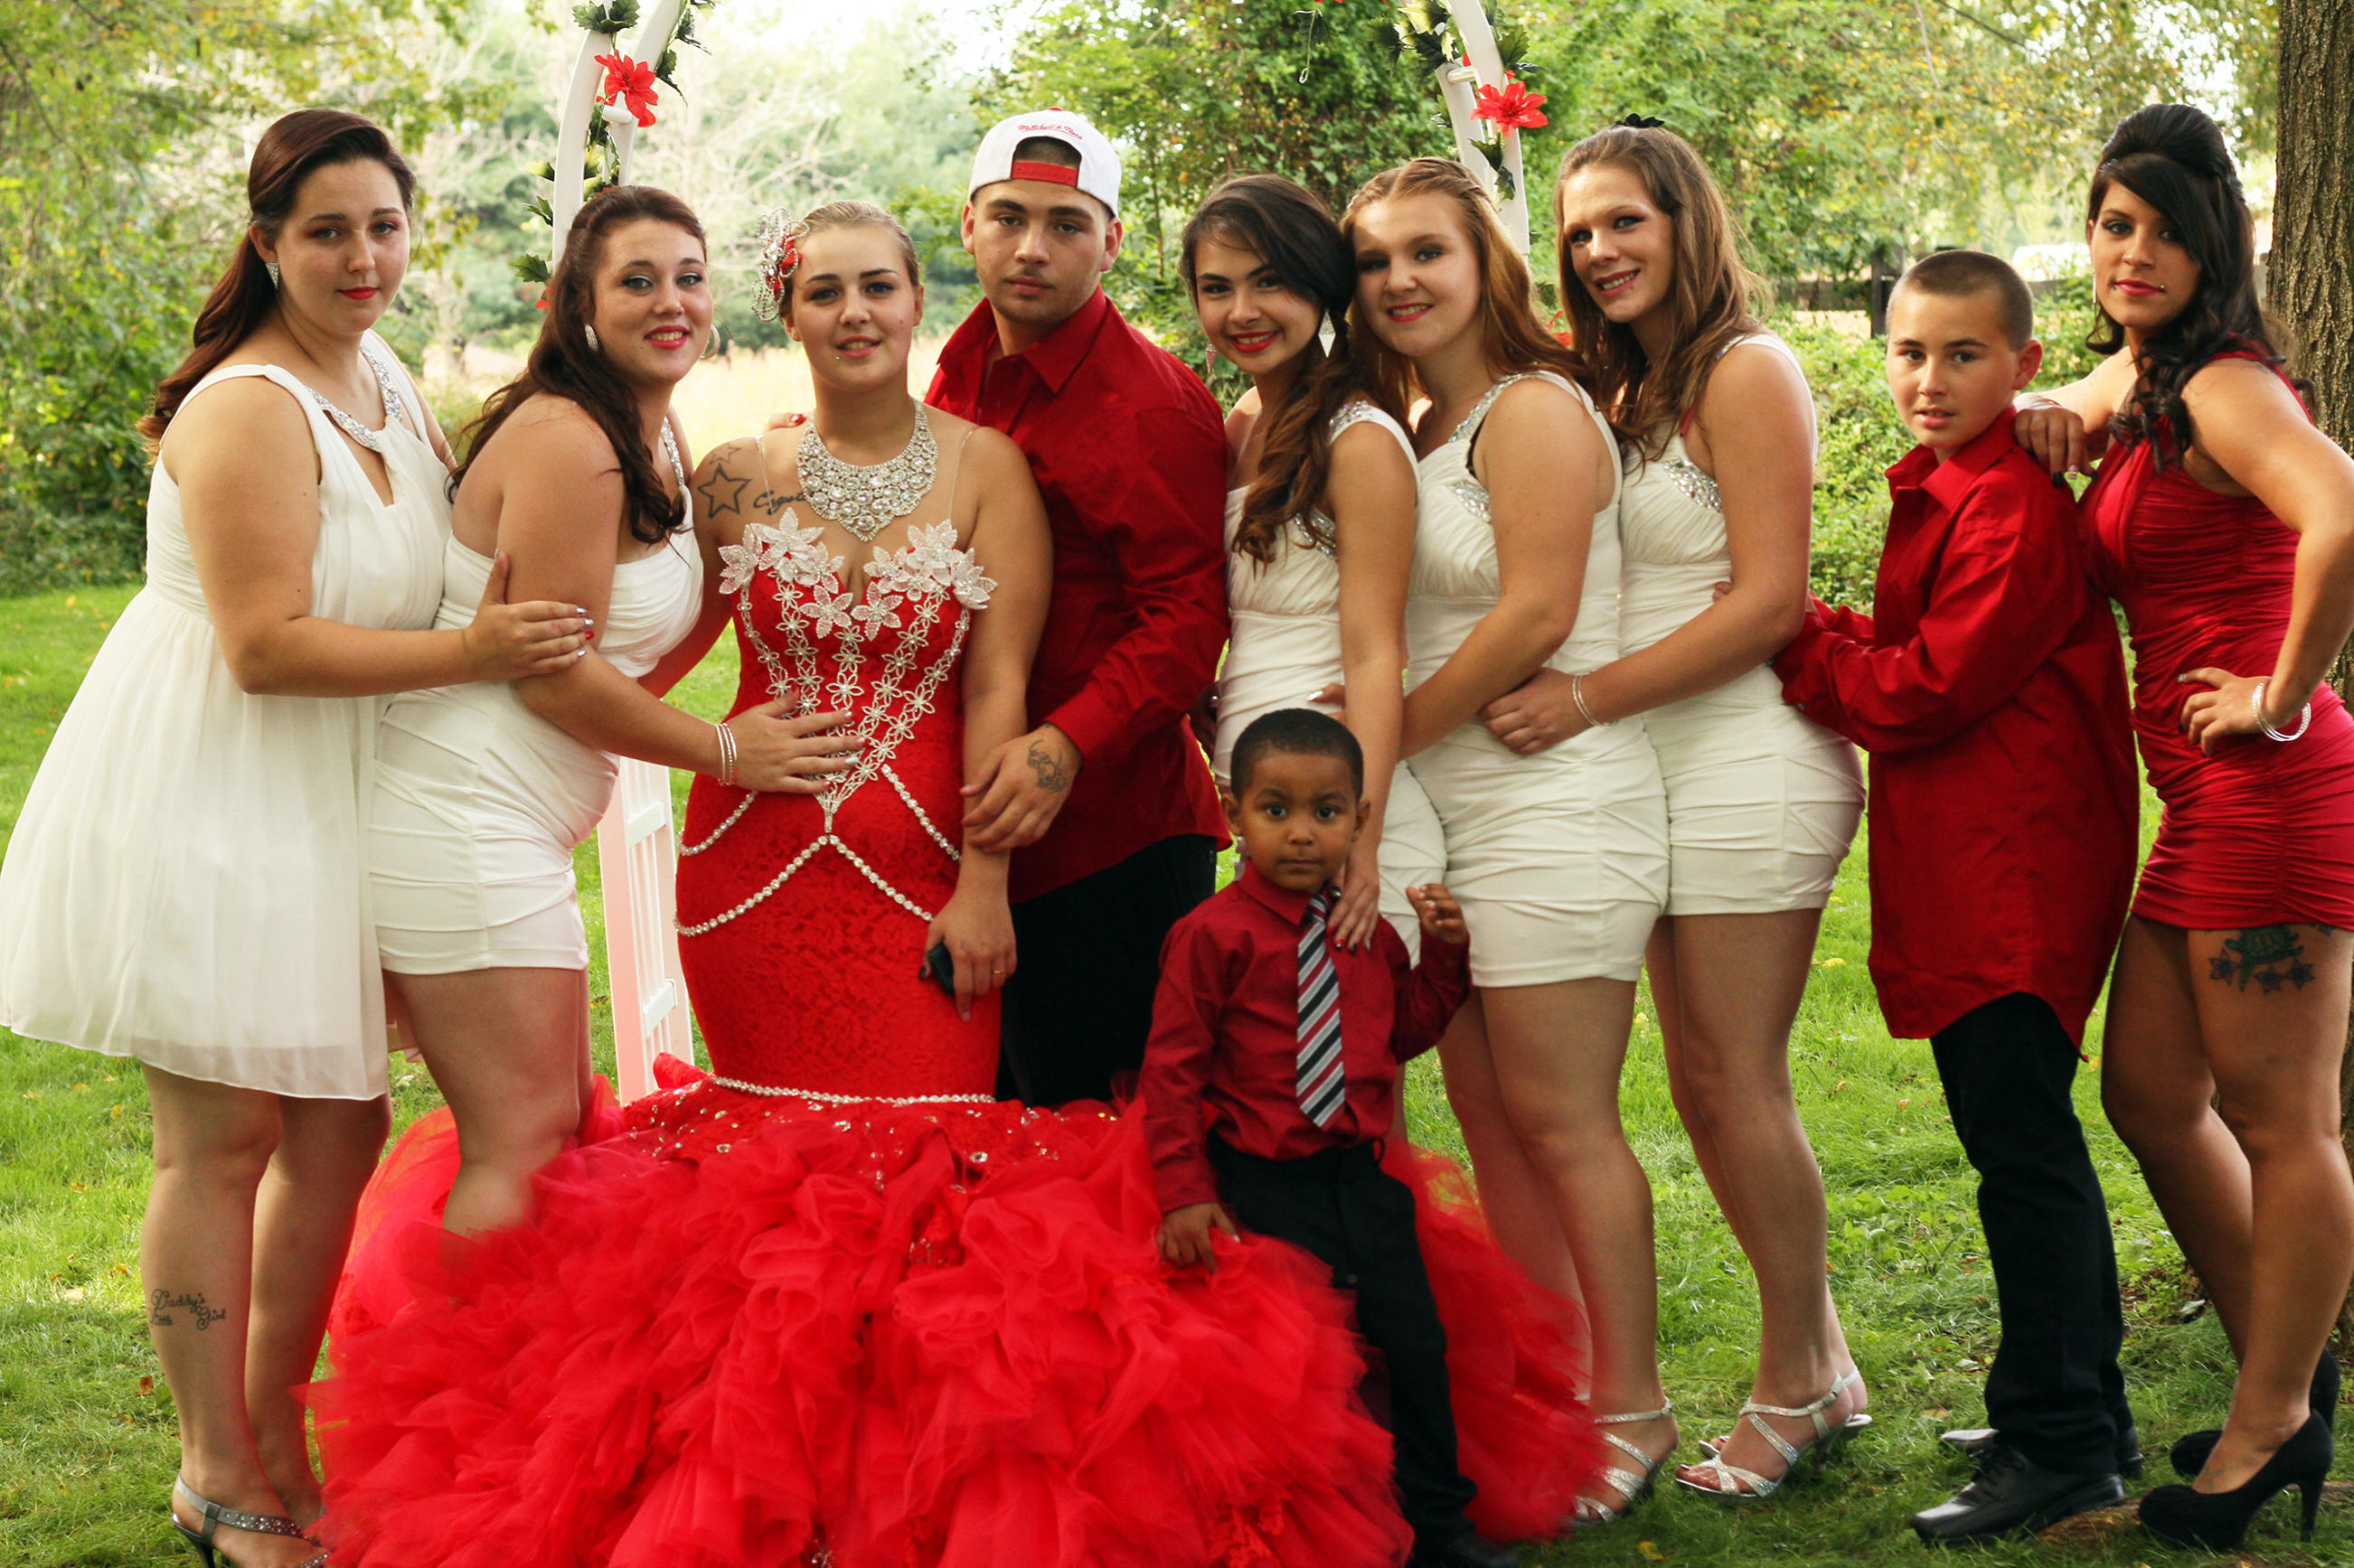 Gorger Gypsy Baptism And Arranged Marriage Dresses My Big Fat